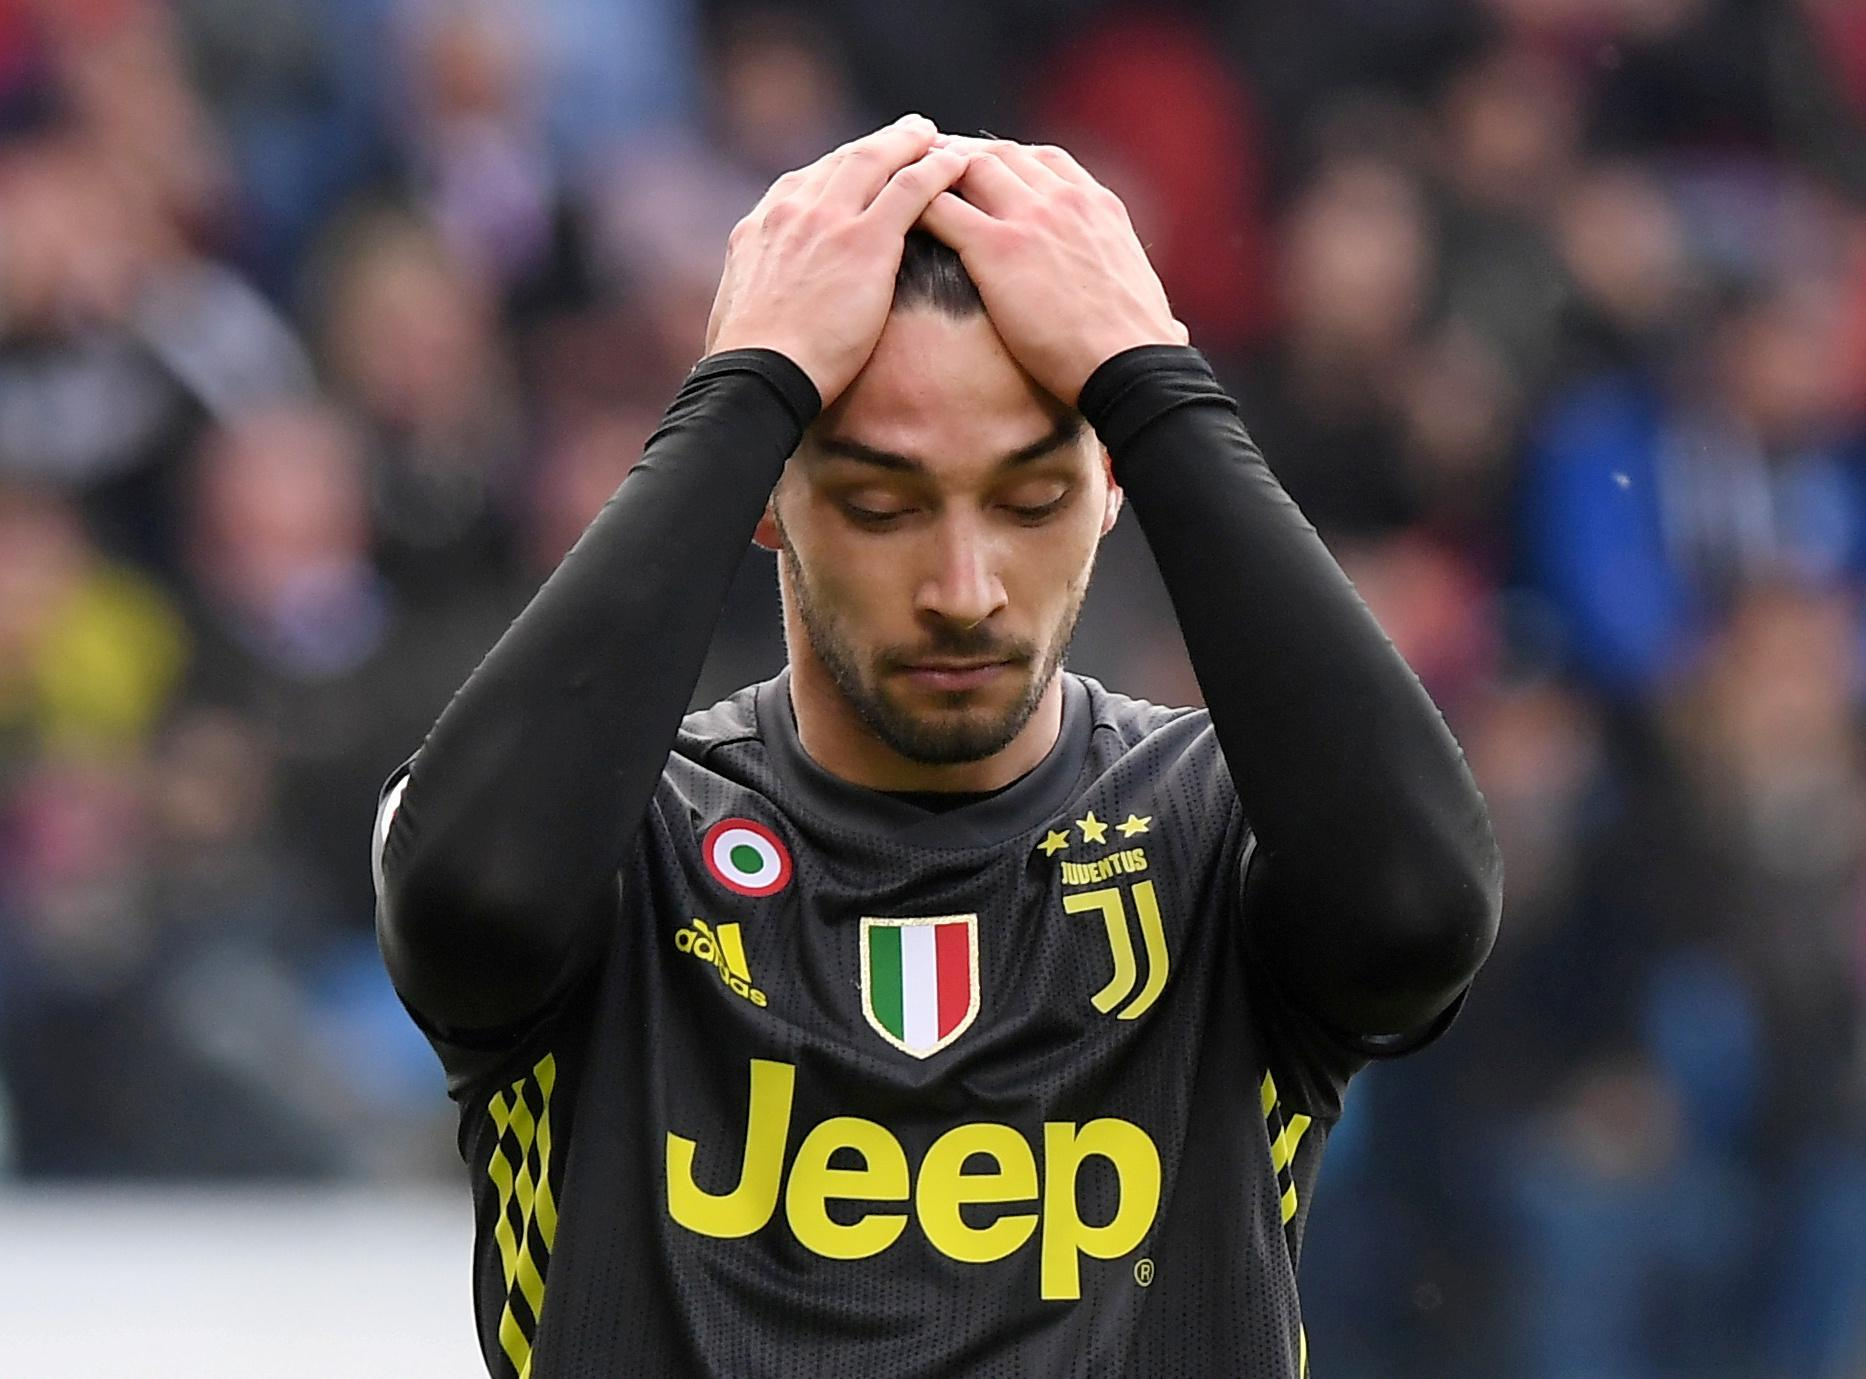 Juve's De Sciglio out with thigh injury for at least 10 days